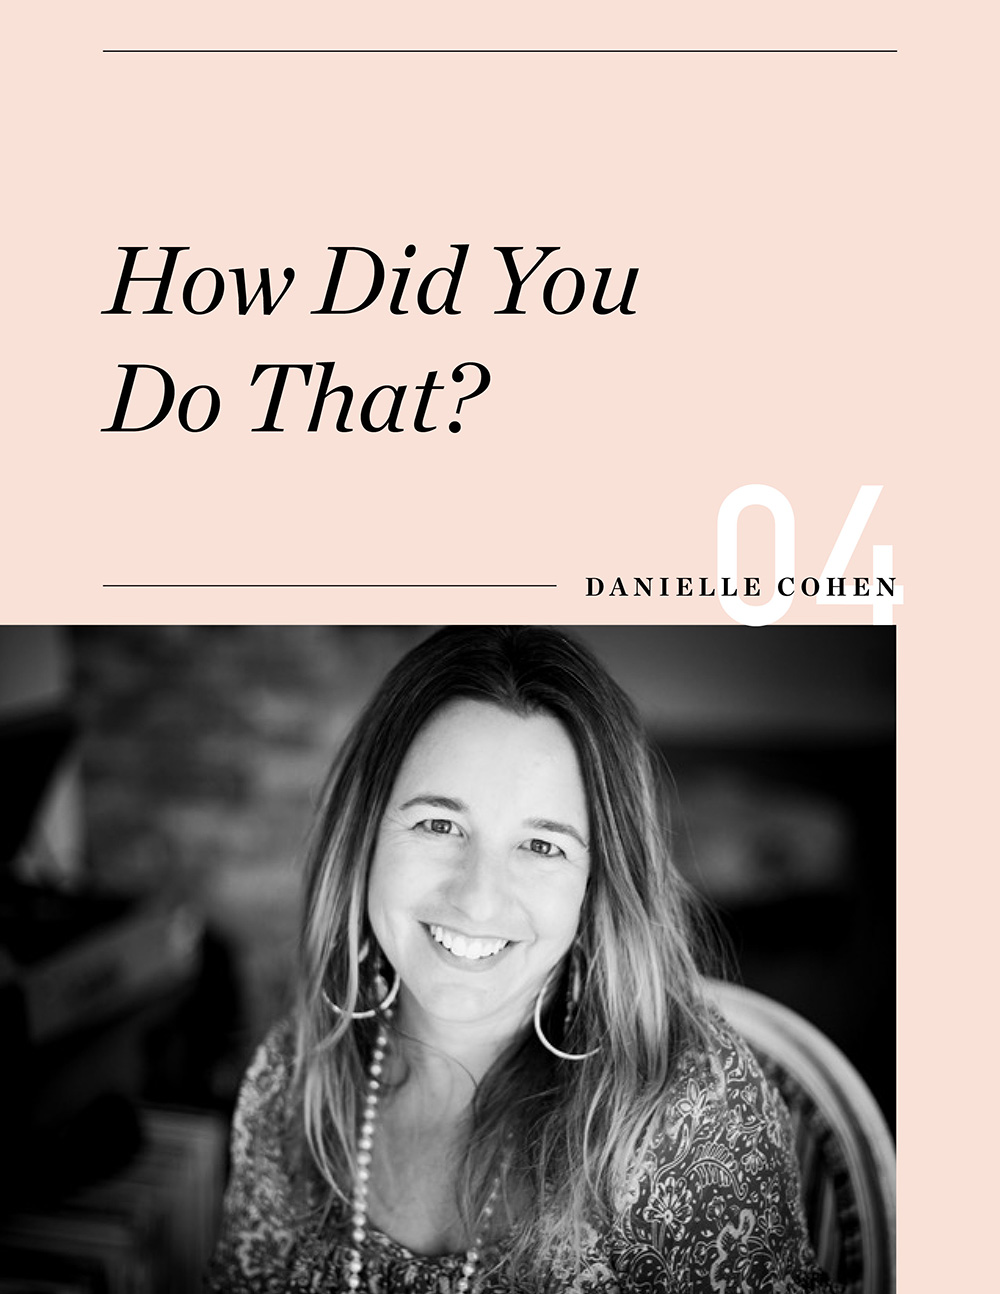 HOW_DID_YOU_DO_THAT_DANIELLE_COHEN_1